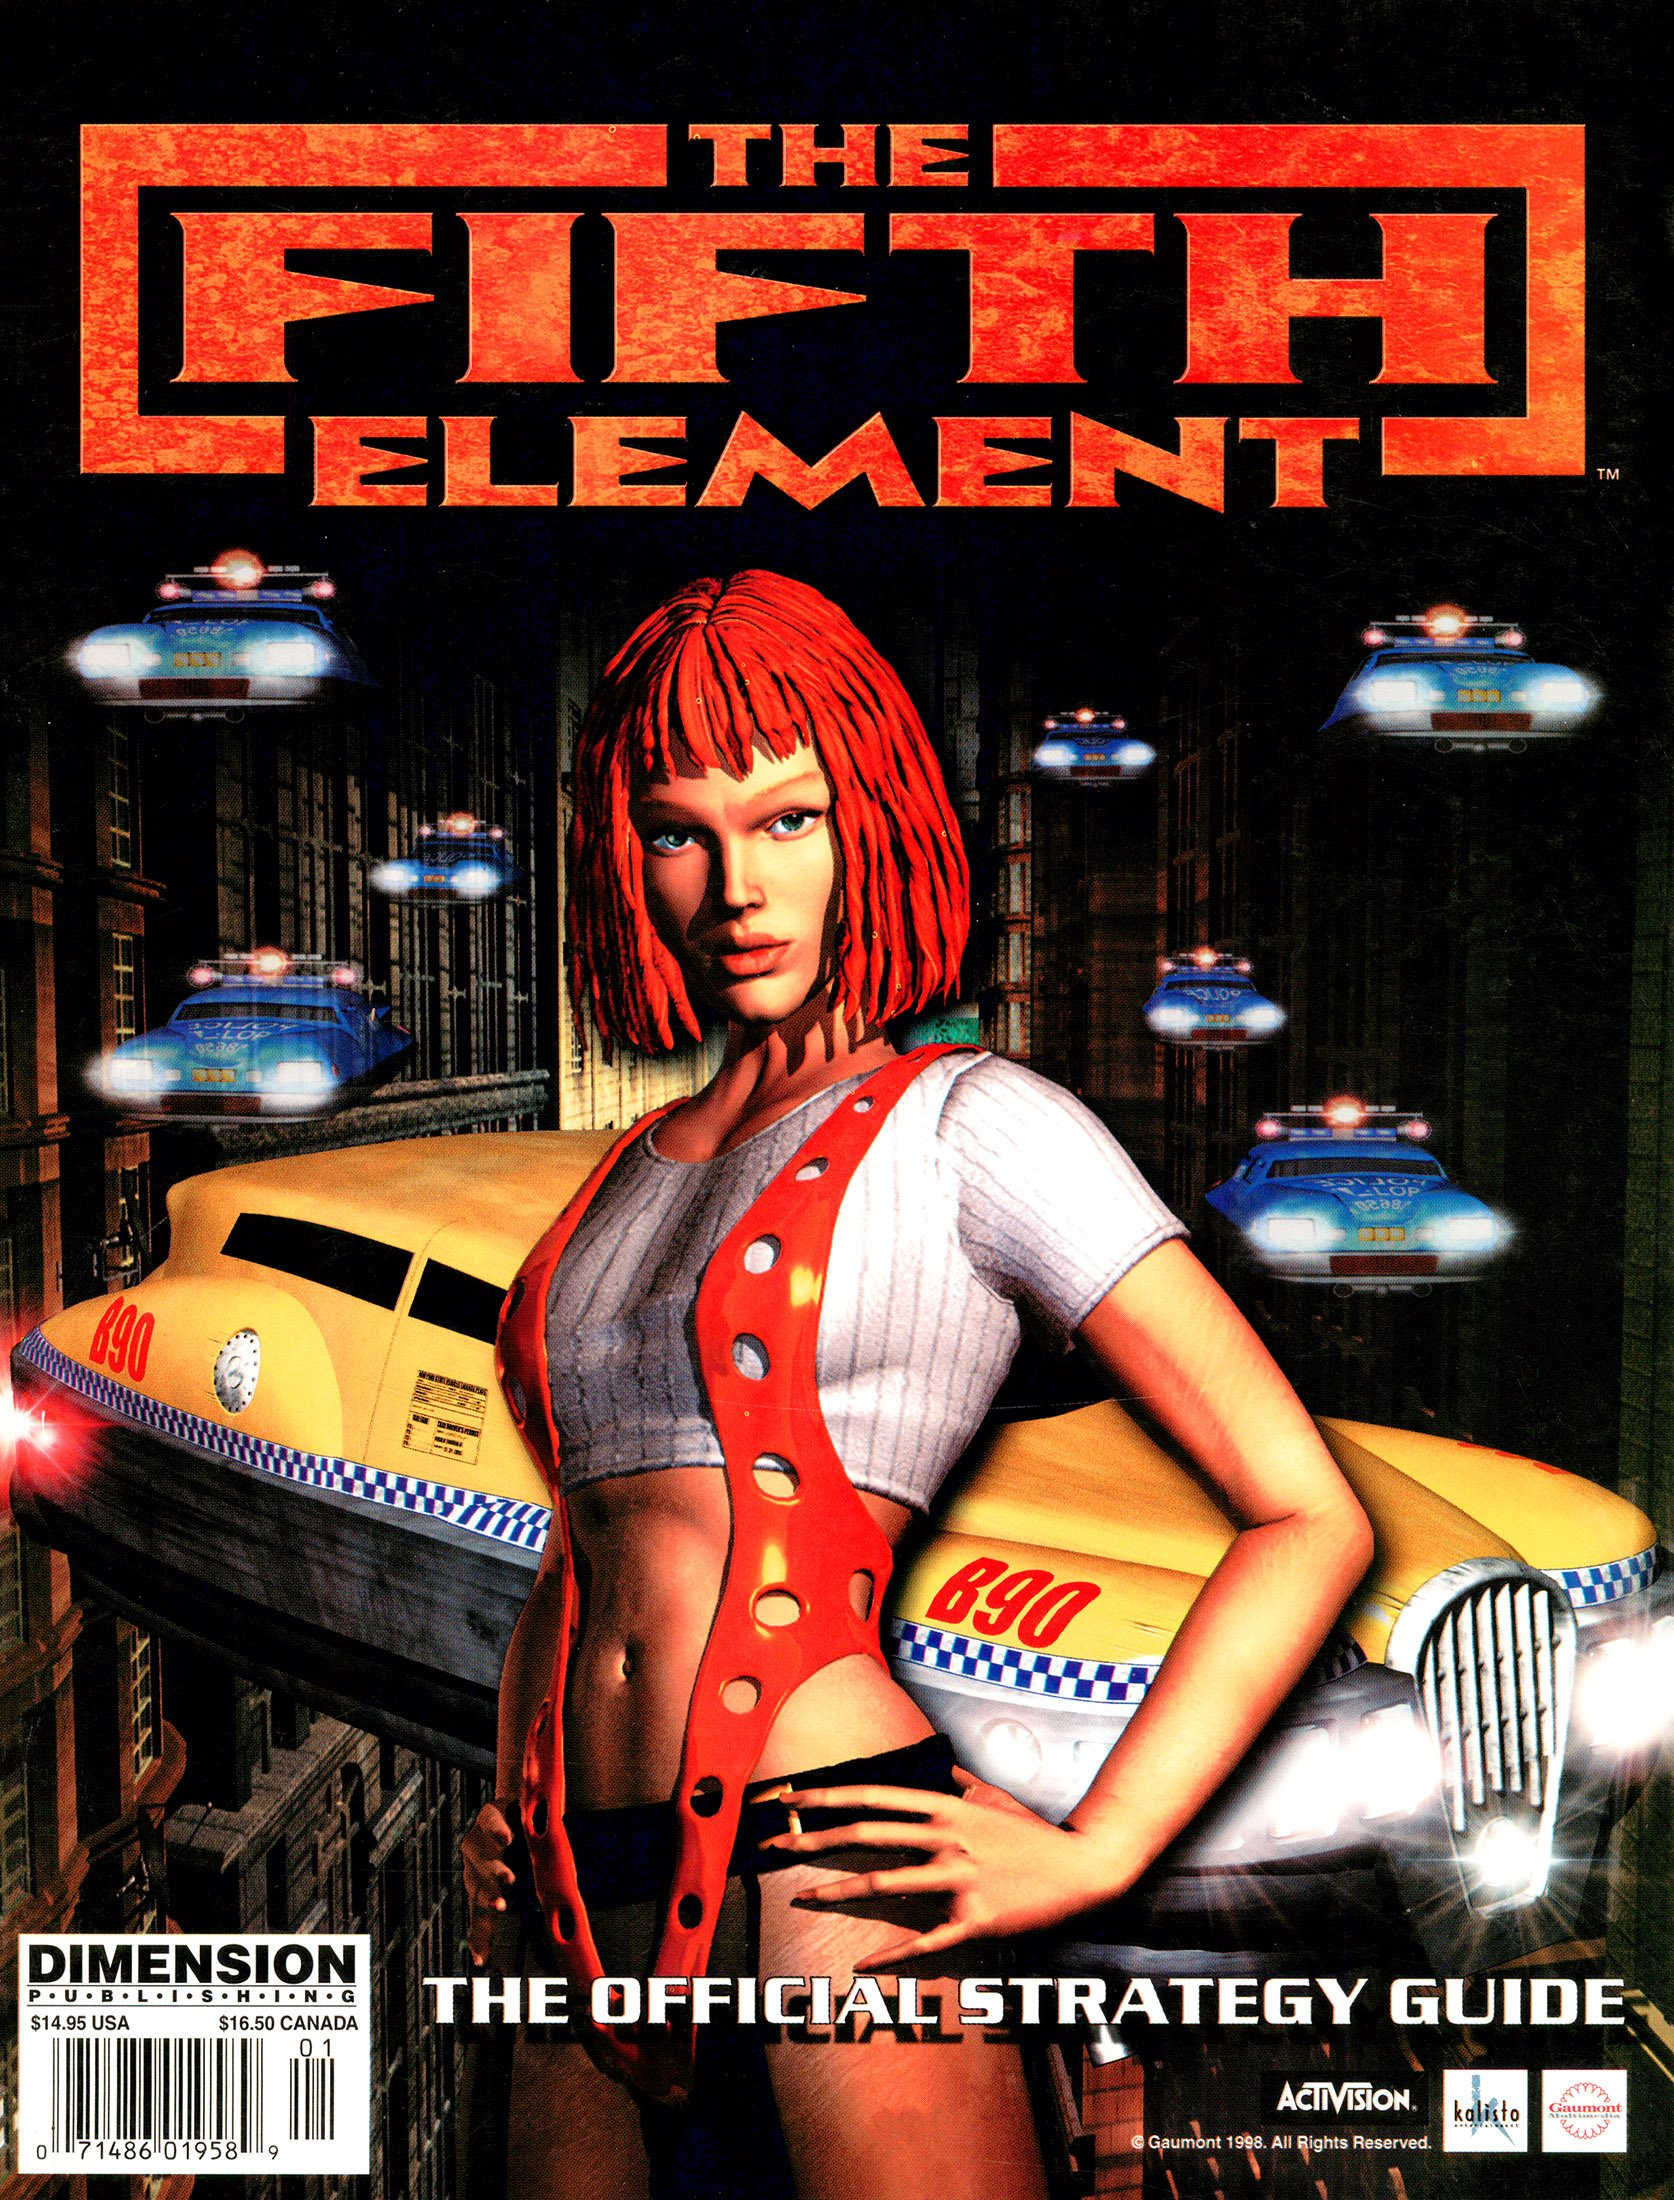 The Fifth Element - The Official Strategy Guide